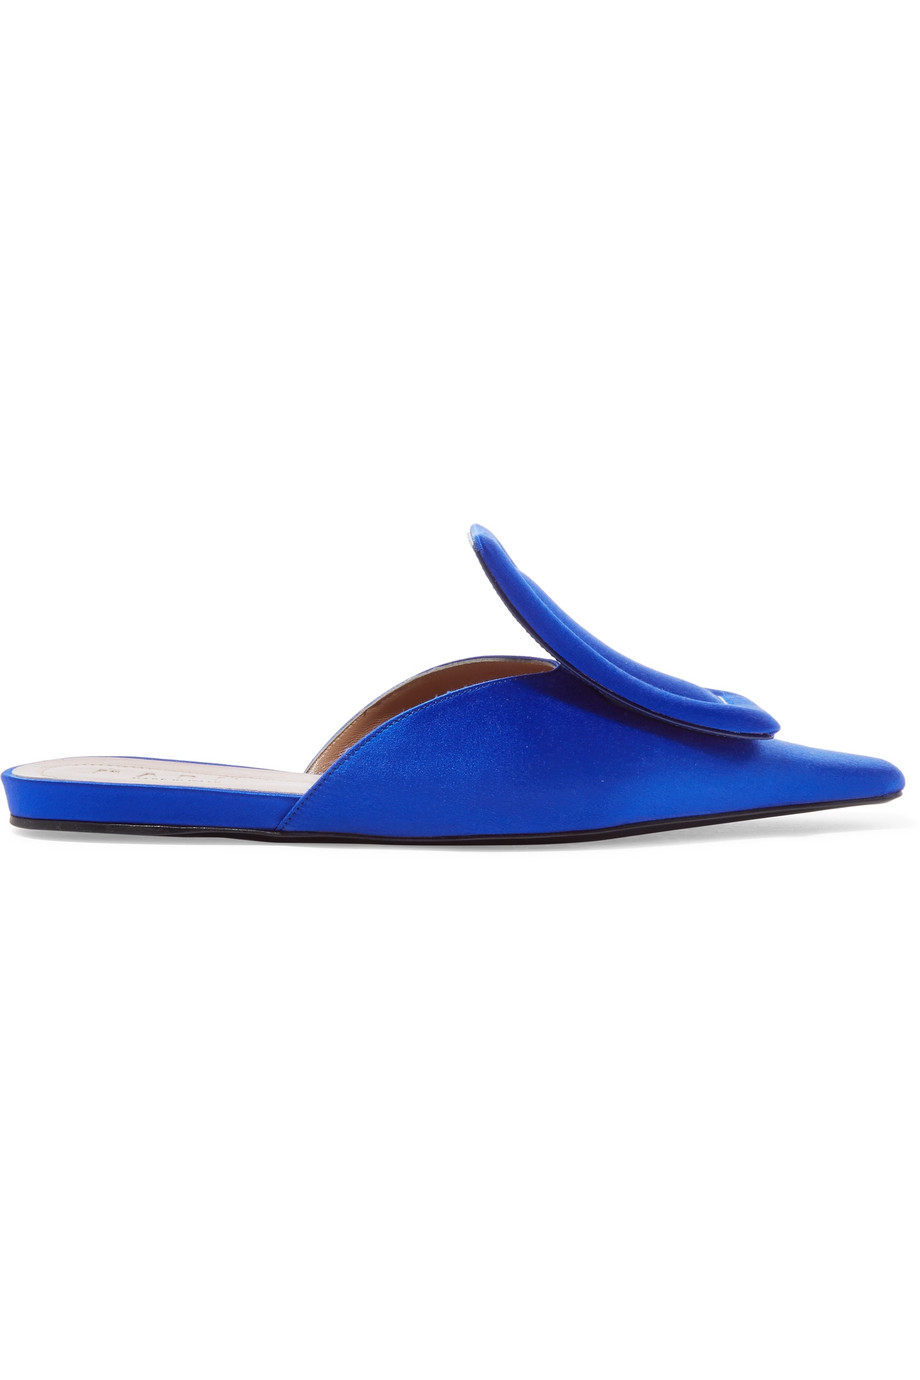 Mules with sole Marni buy Mules with sole Marni internet shop